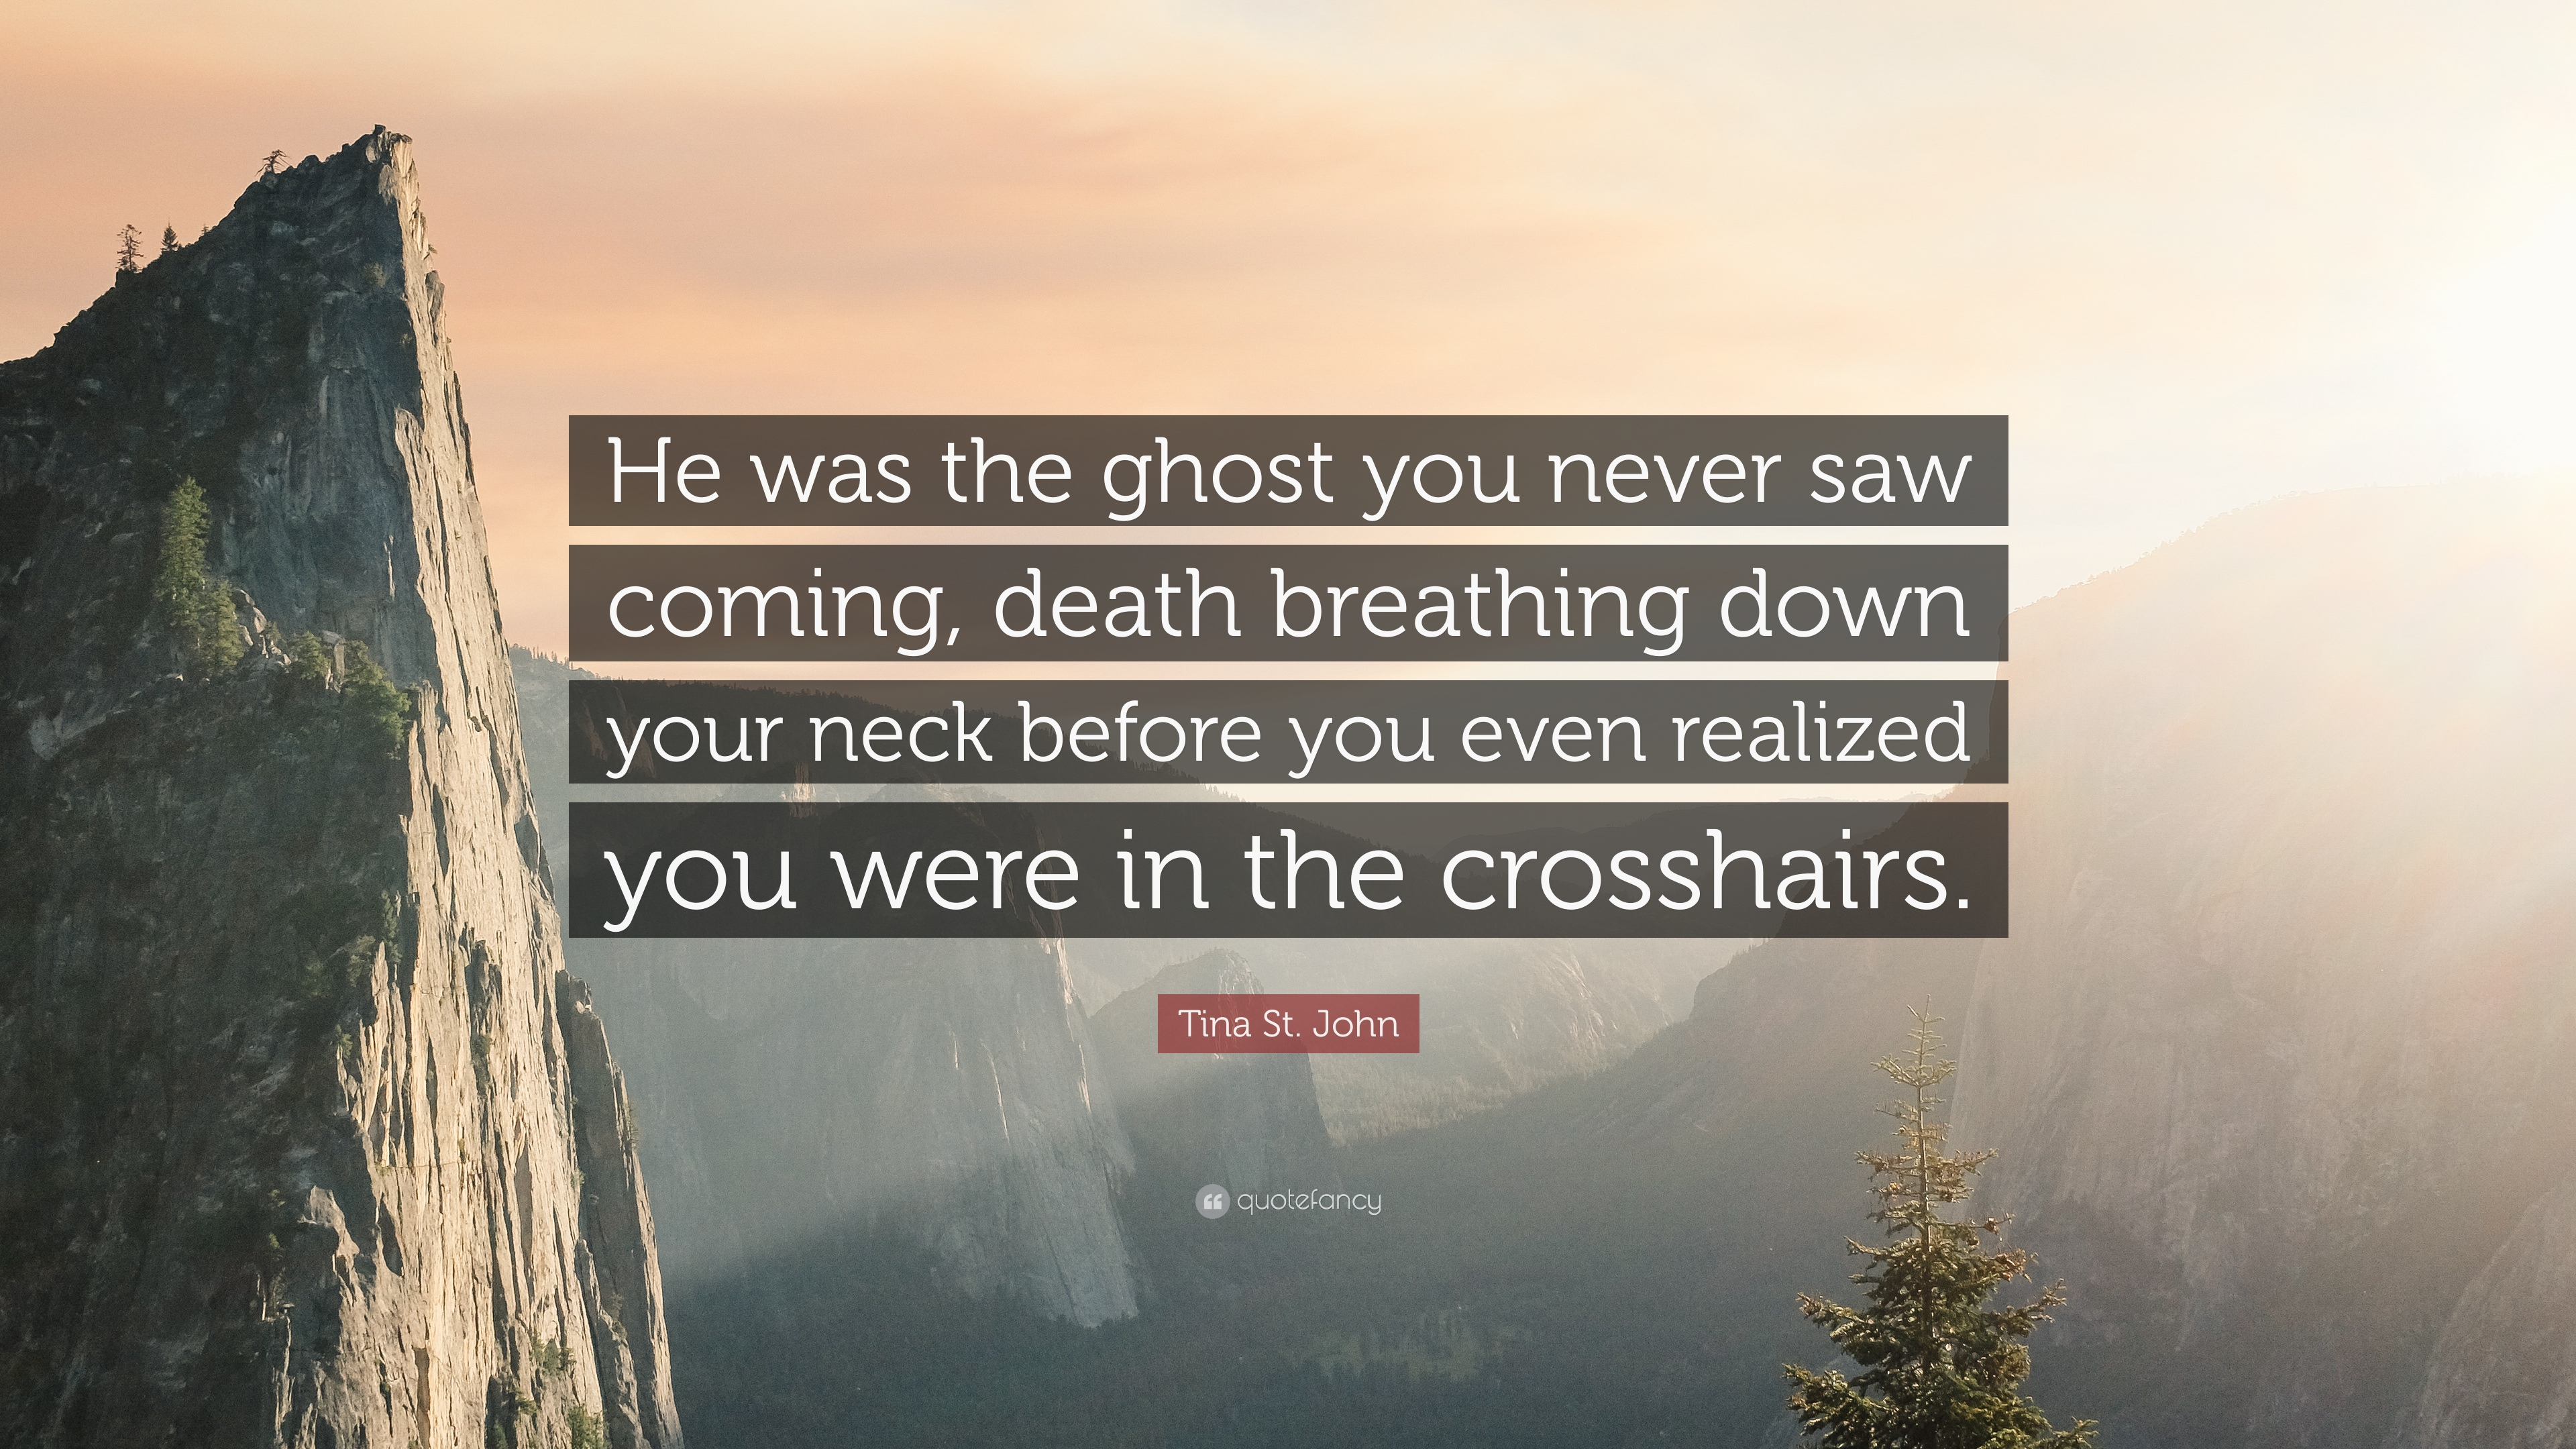 What You Never Realized You Were >> Tina St John Quote He Was The Ghost You Never Saw Coming Death